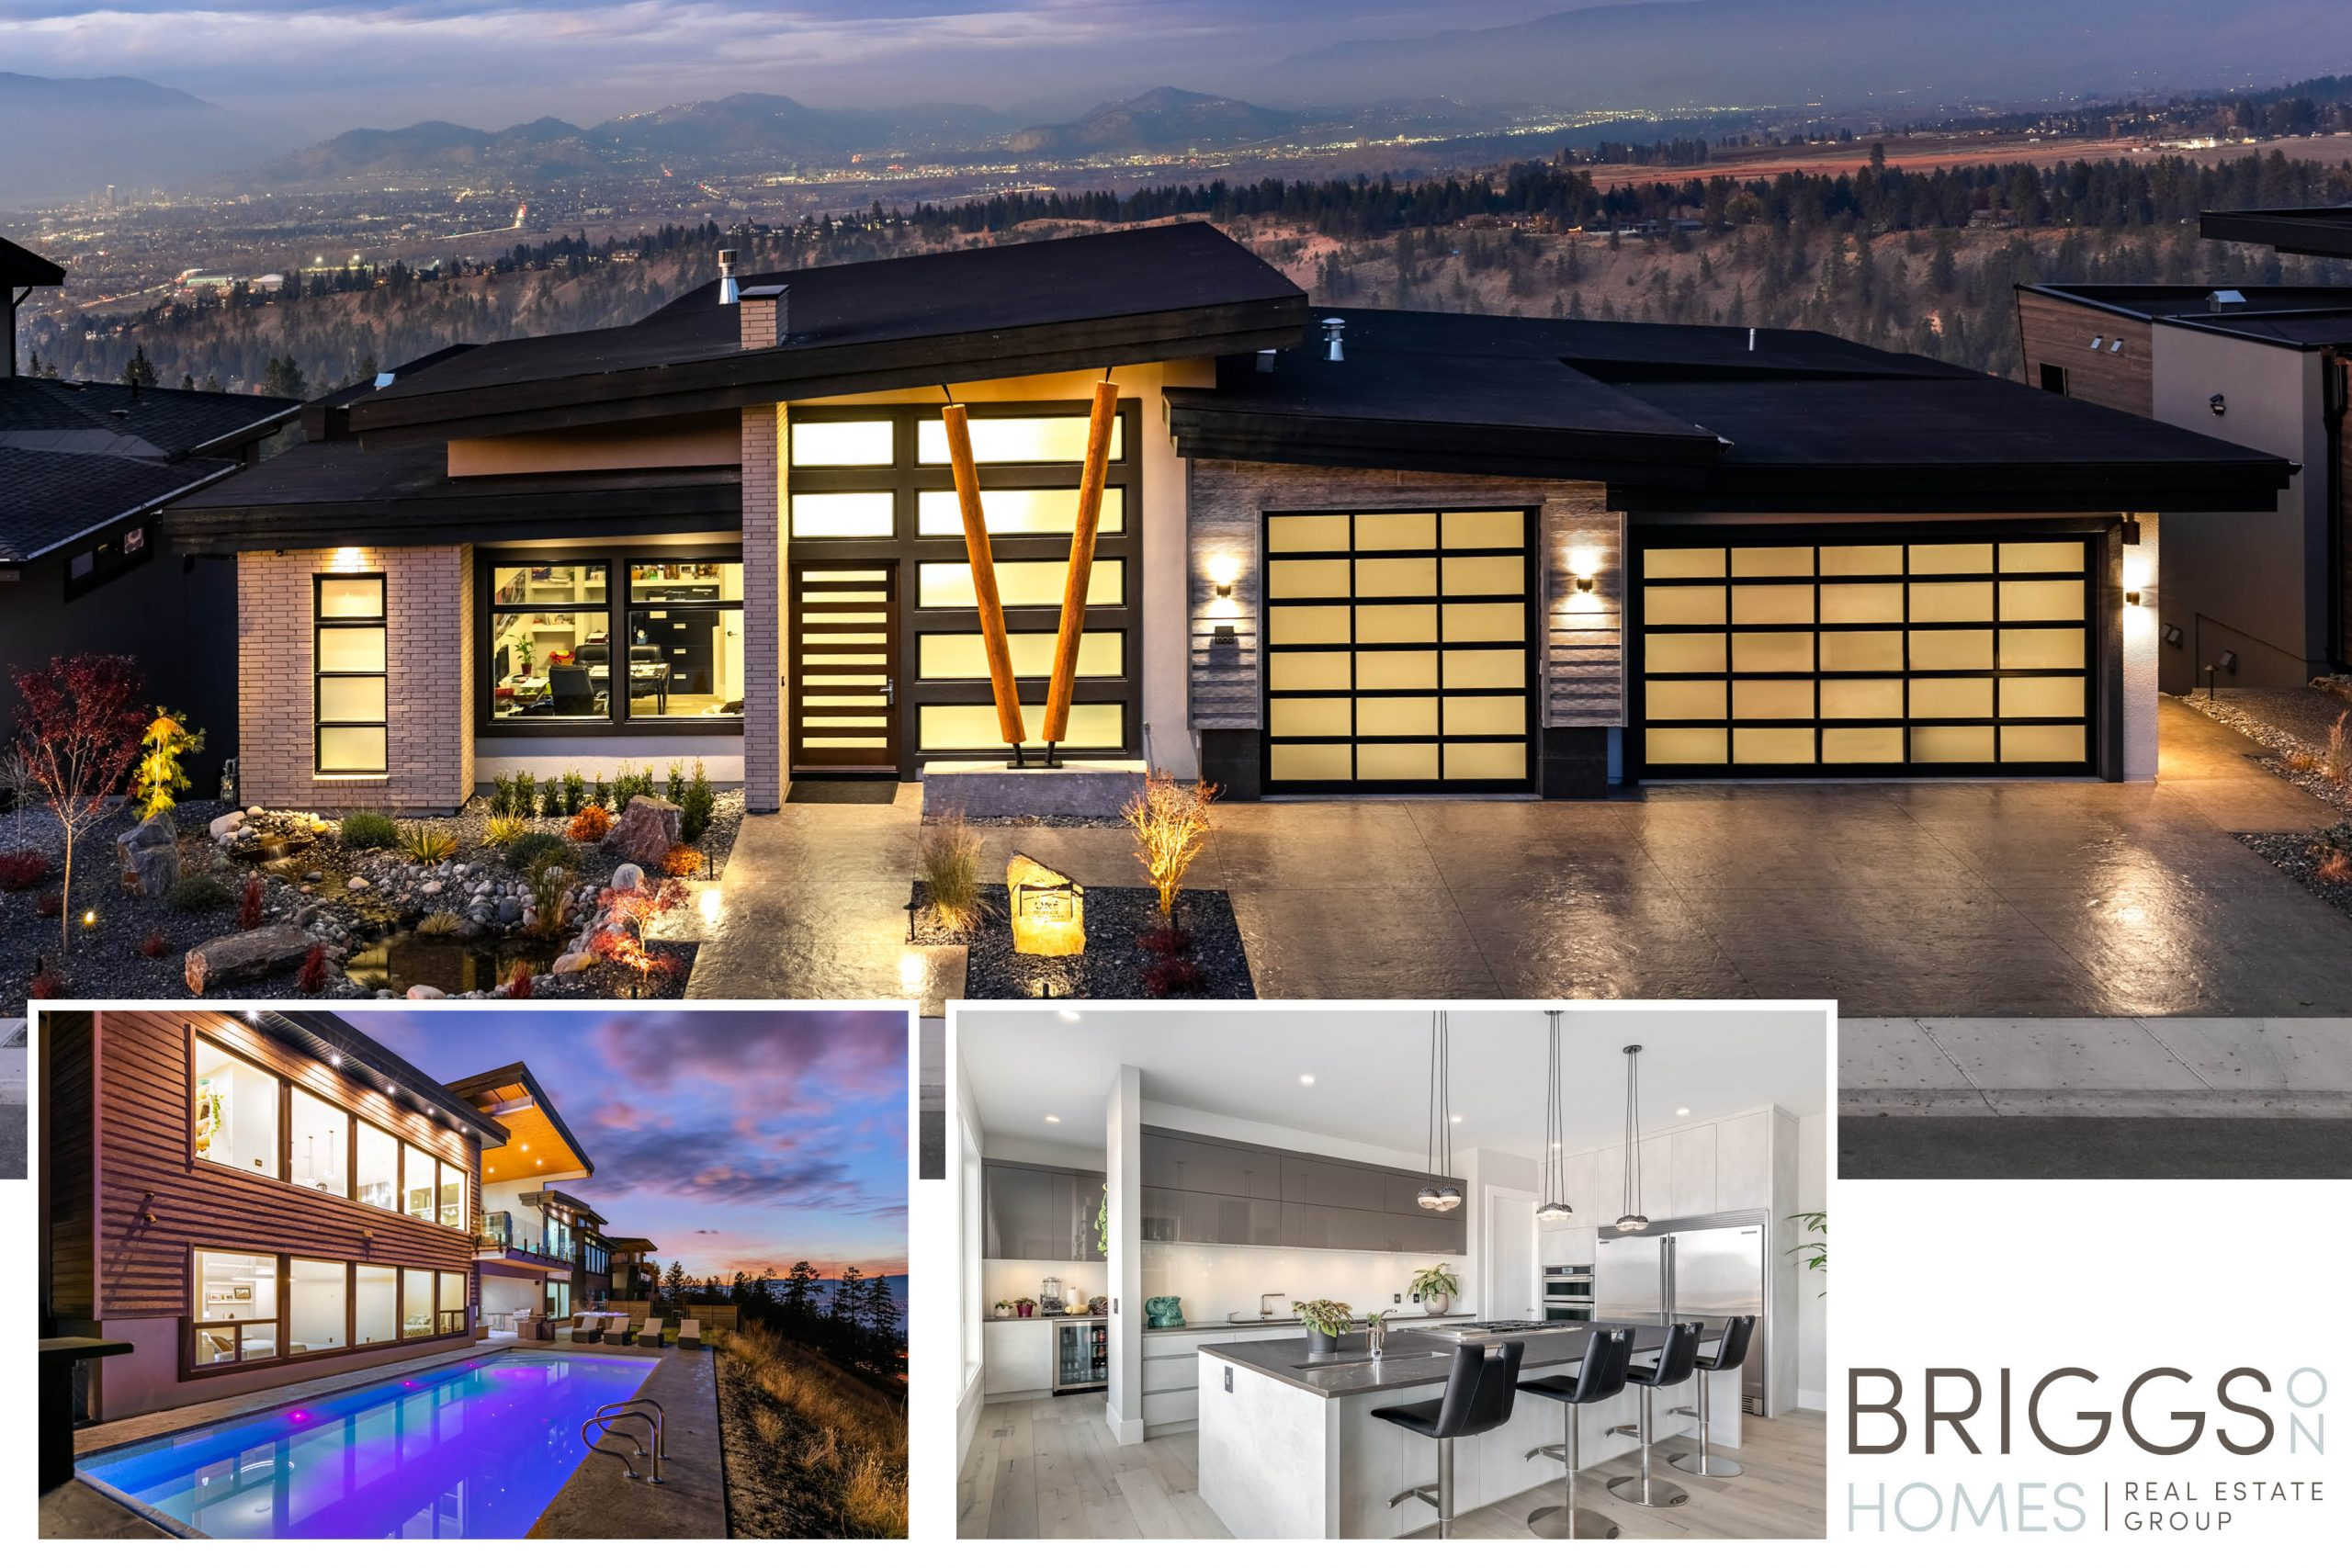 Just Sold – Exquisite Lakeview Contemporary Home